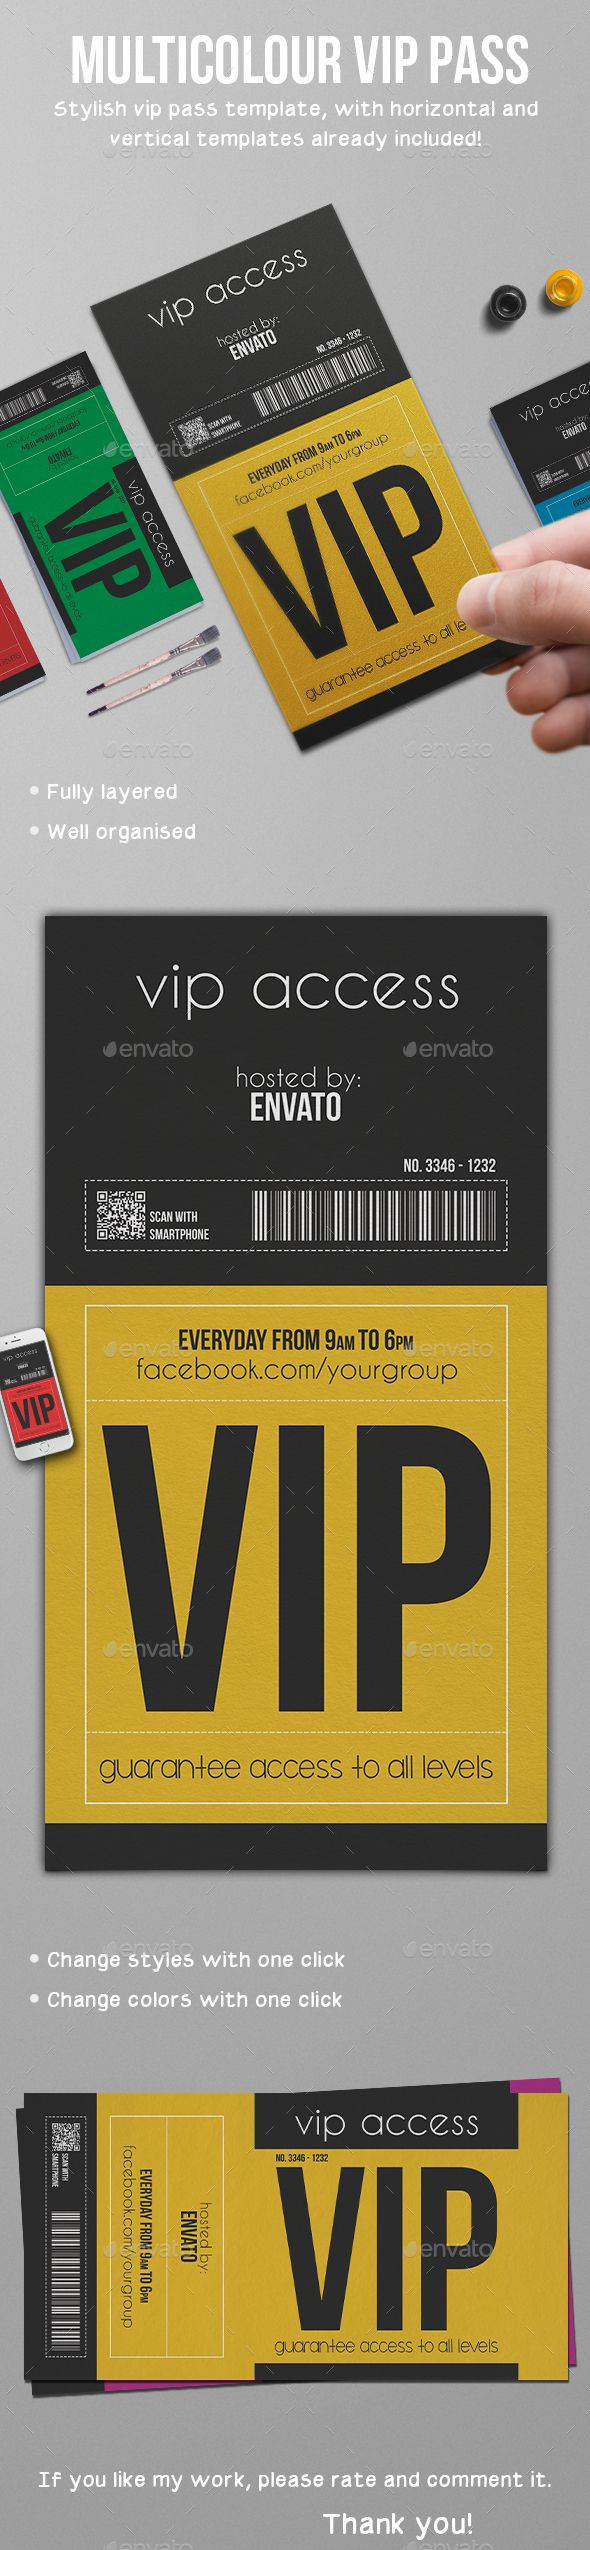 Multipurpose Vip Pass Card Template PSD. Download here: http://graphicriver.net/item/multipurpose-vip-pass/16252843?ref=ksioks